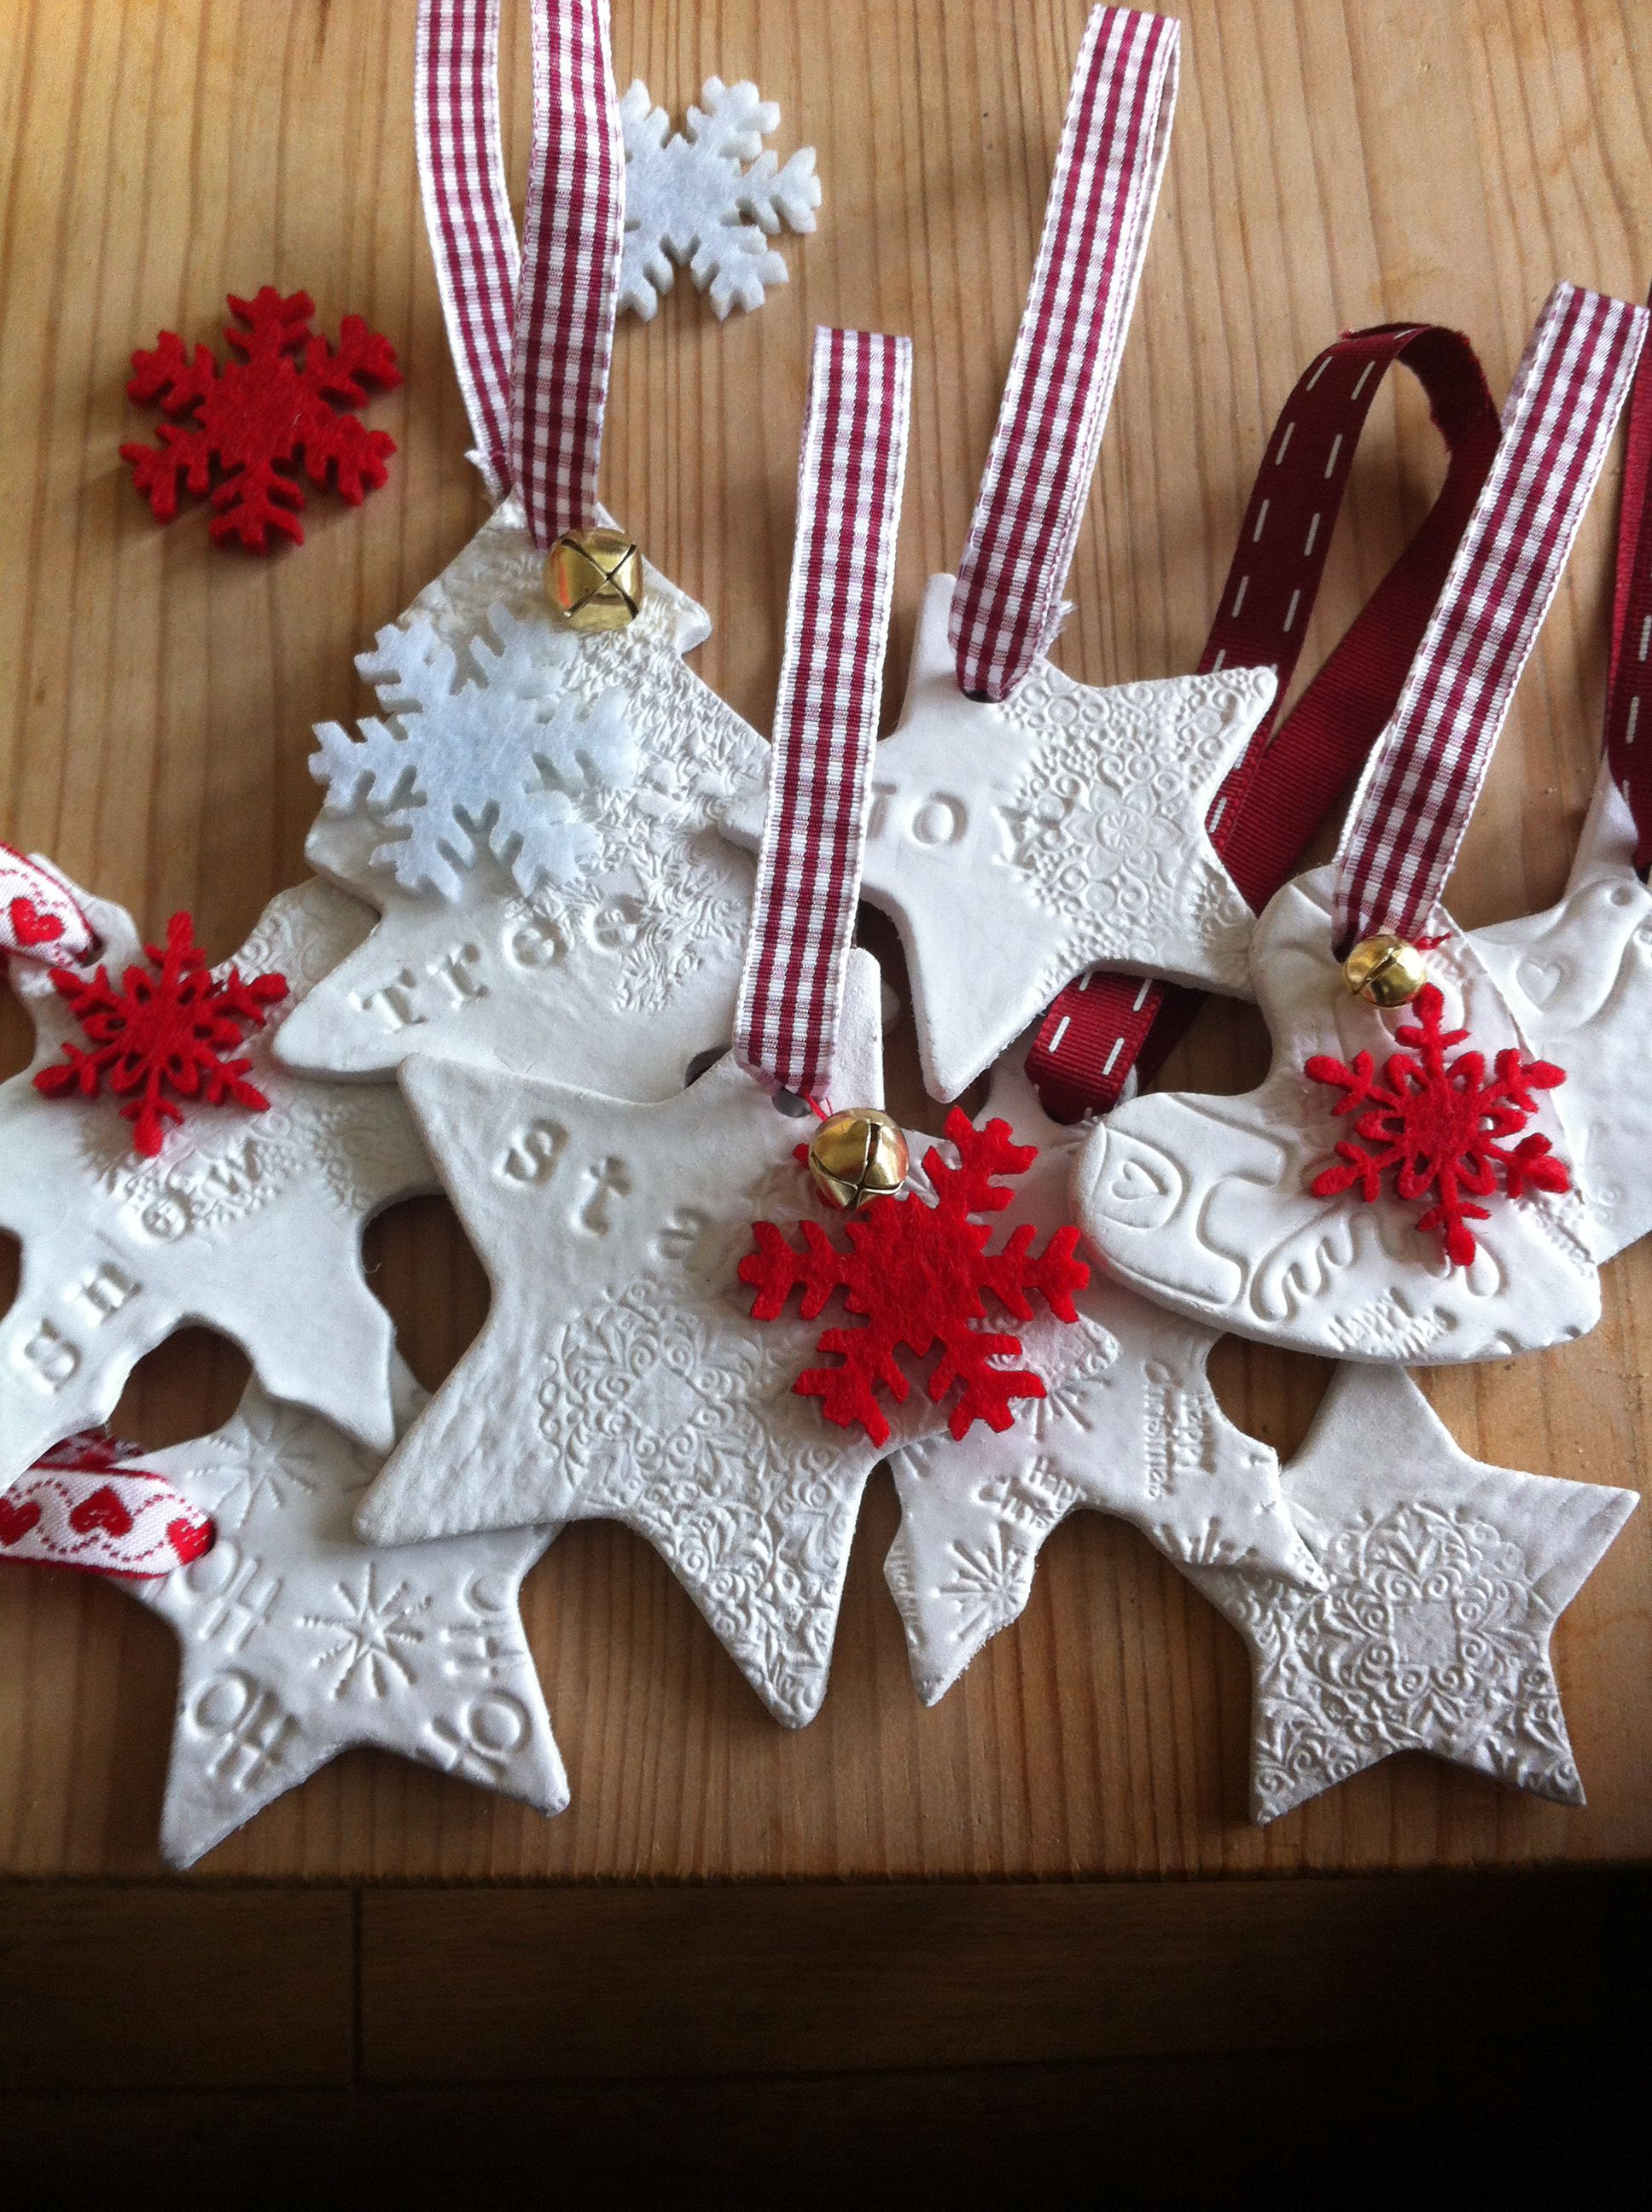 Air drying clay Christmas decoration handmade | gifts | Pinterest ...